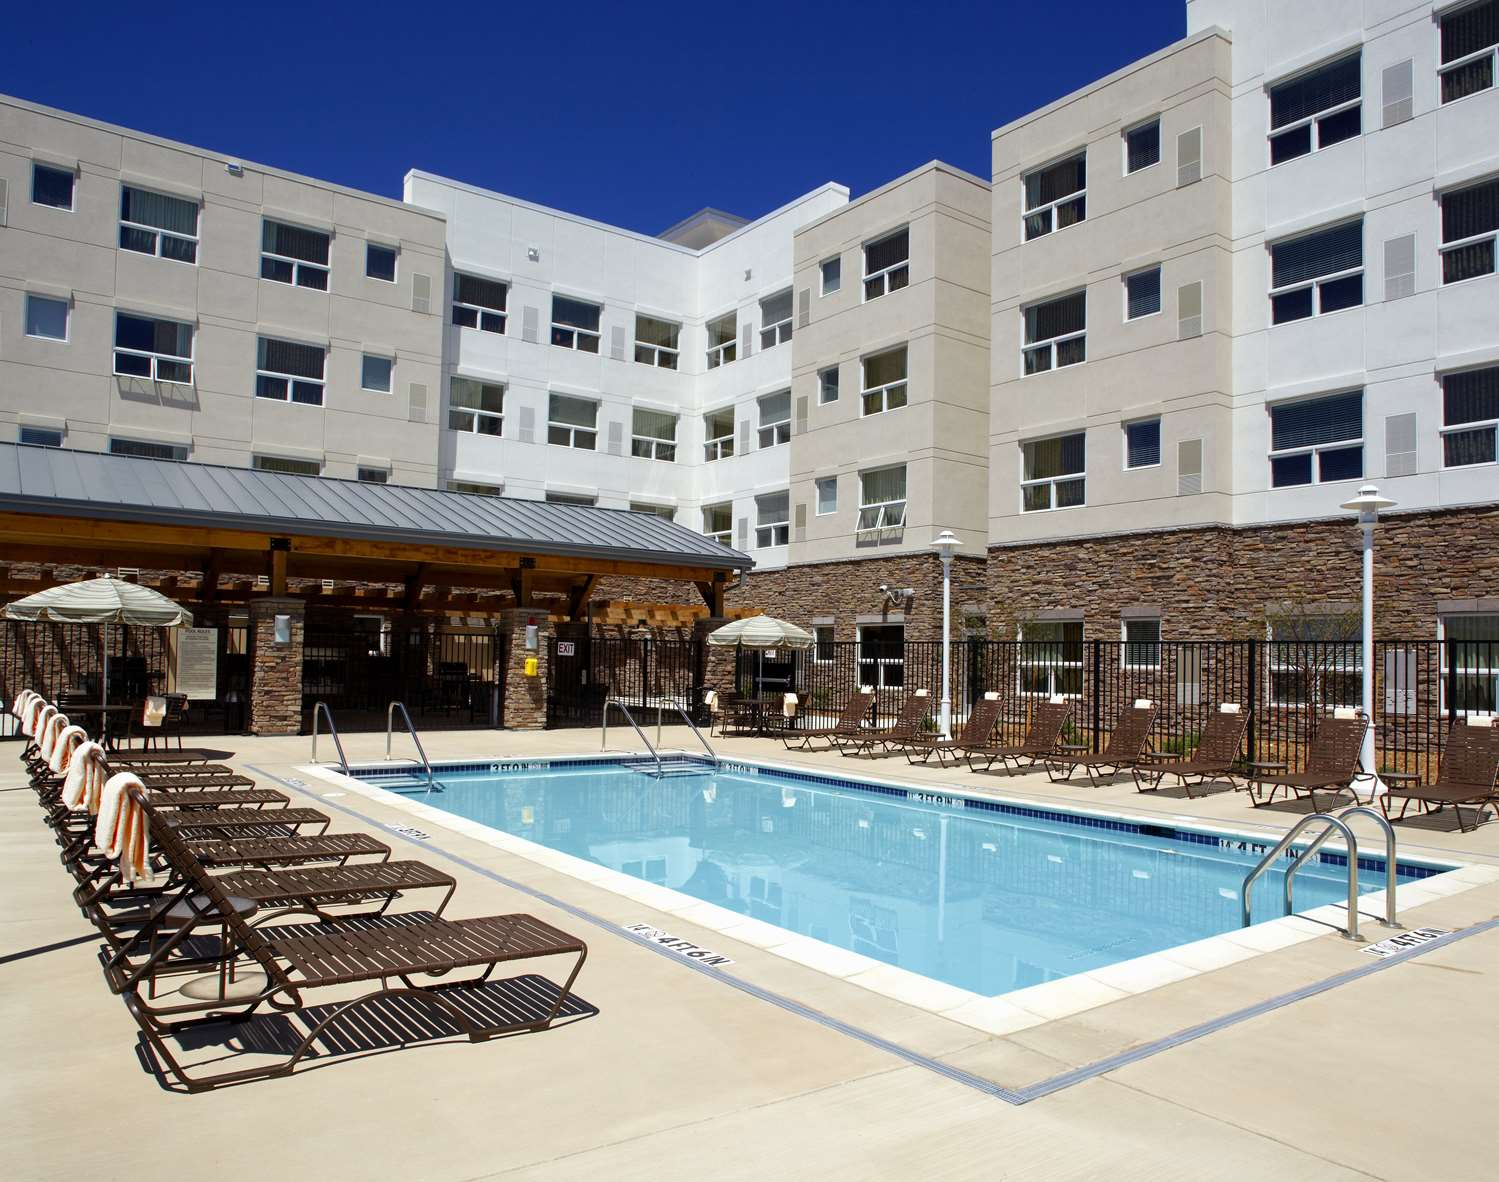 Pool - Hyatt House Hotel Broomfield